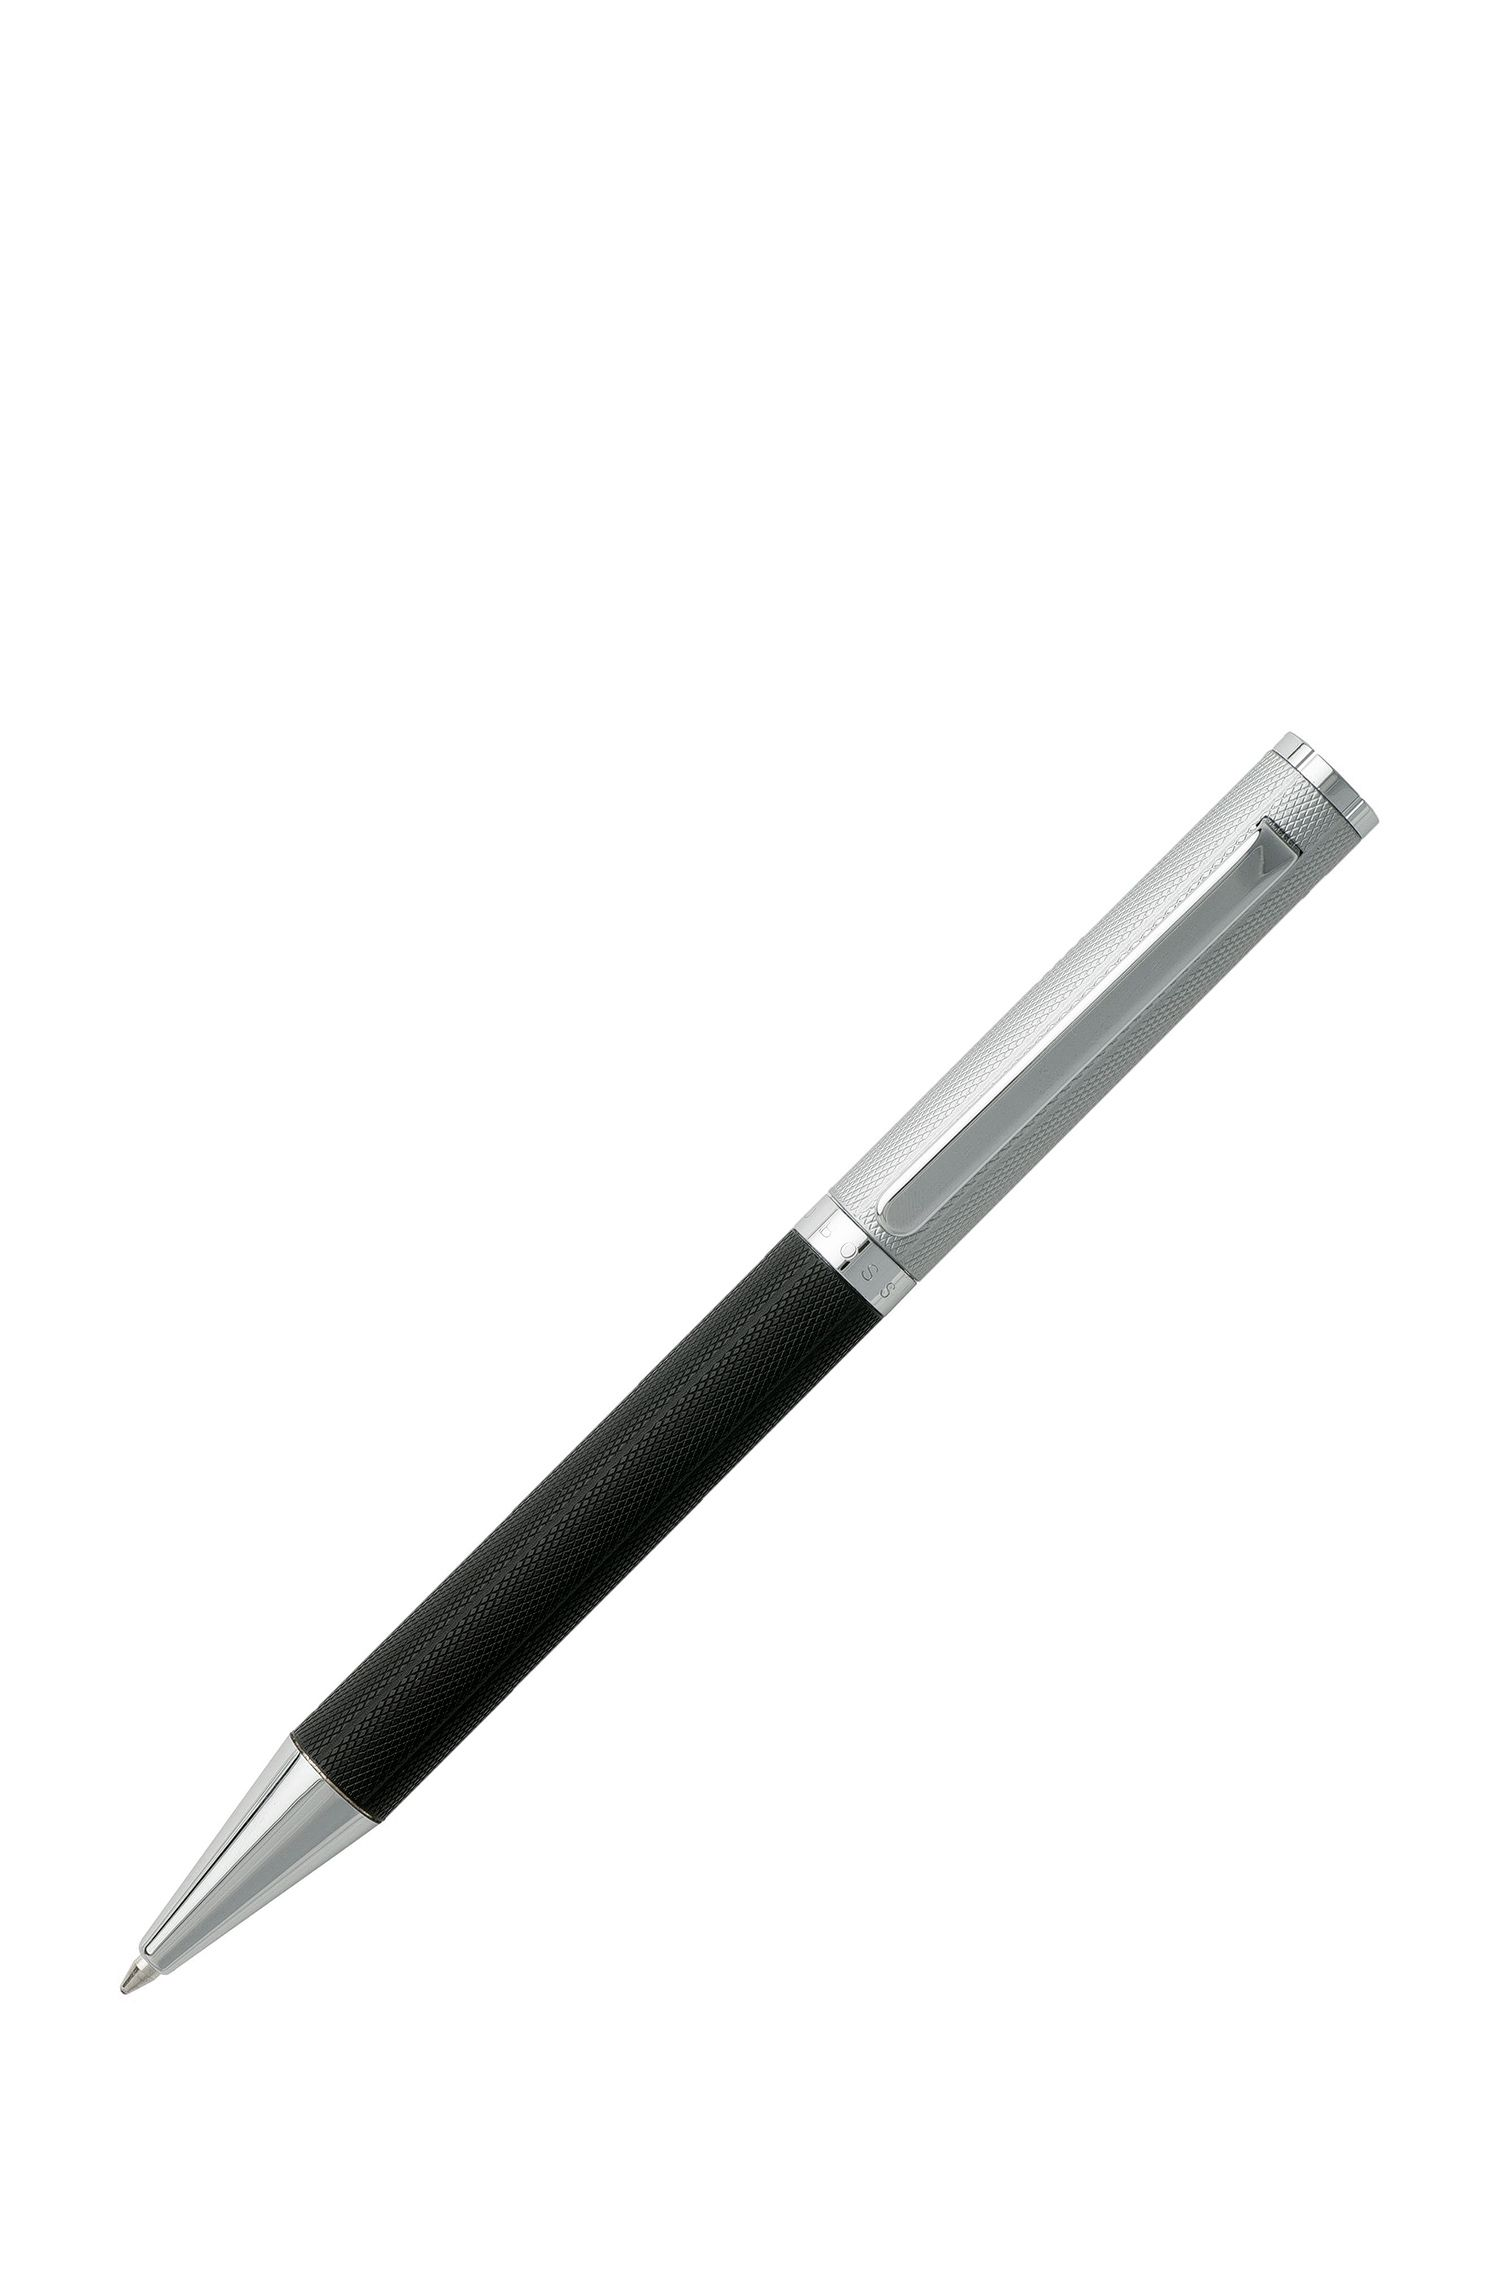 Ballpoint pen with two-tone diamond-patterned texture